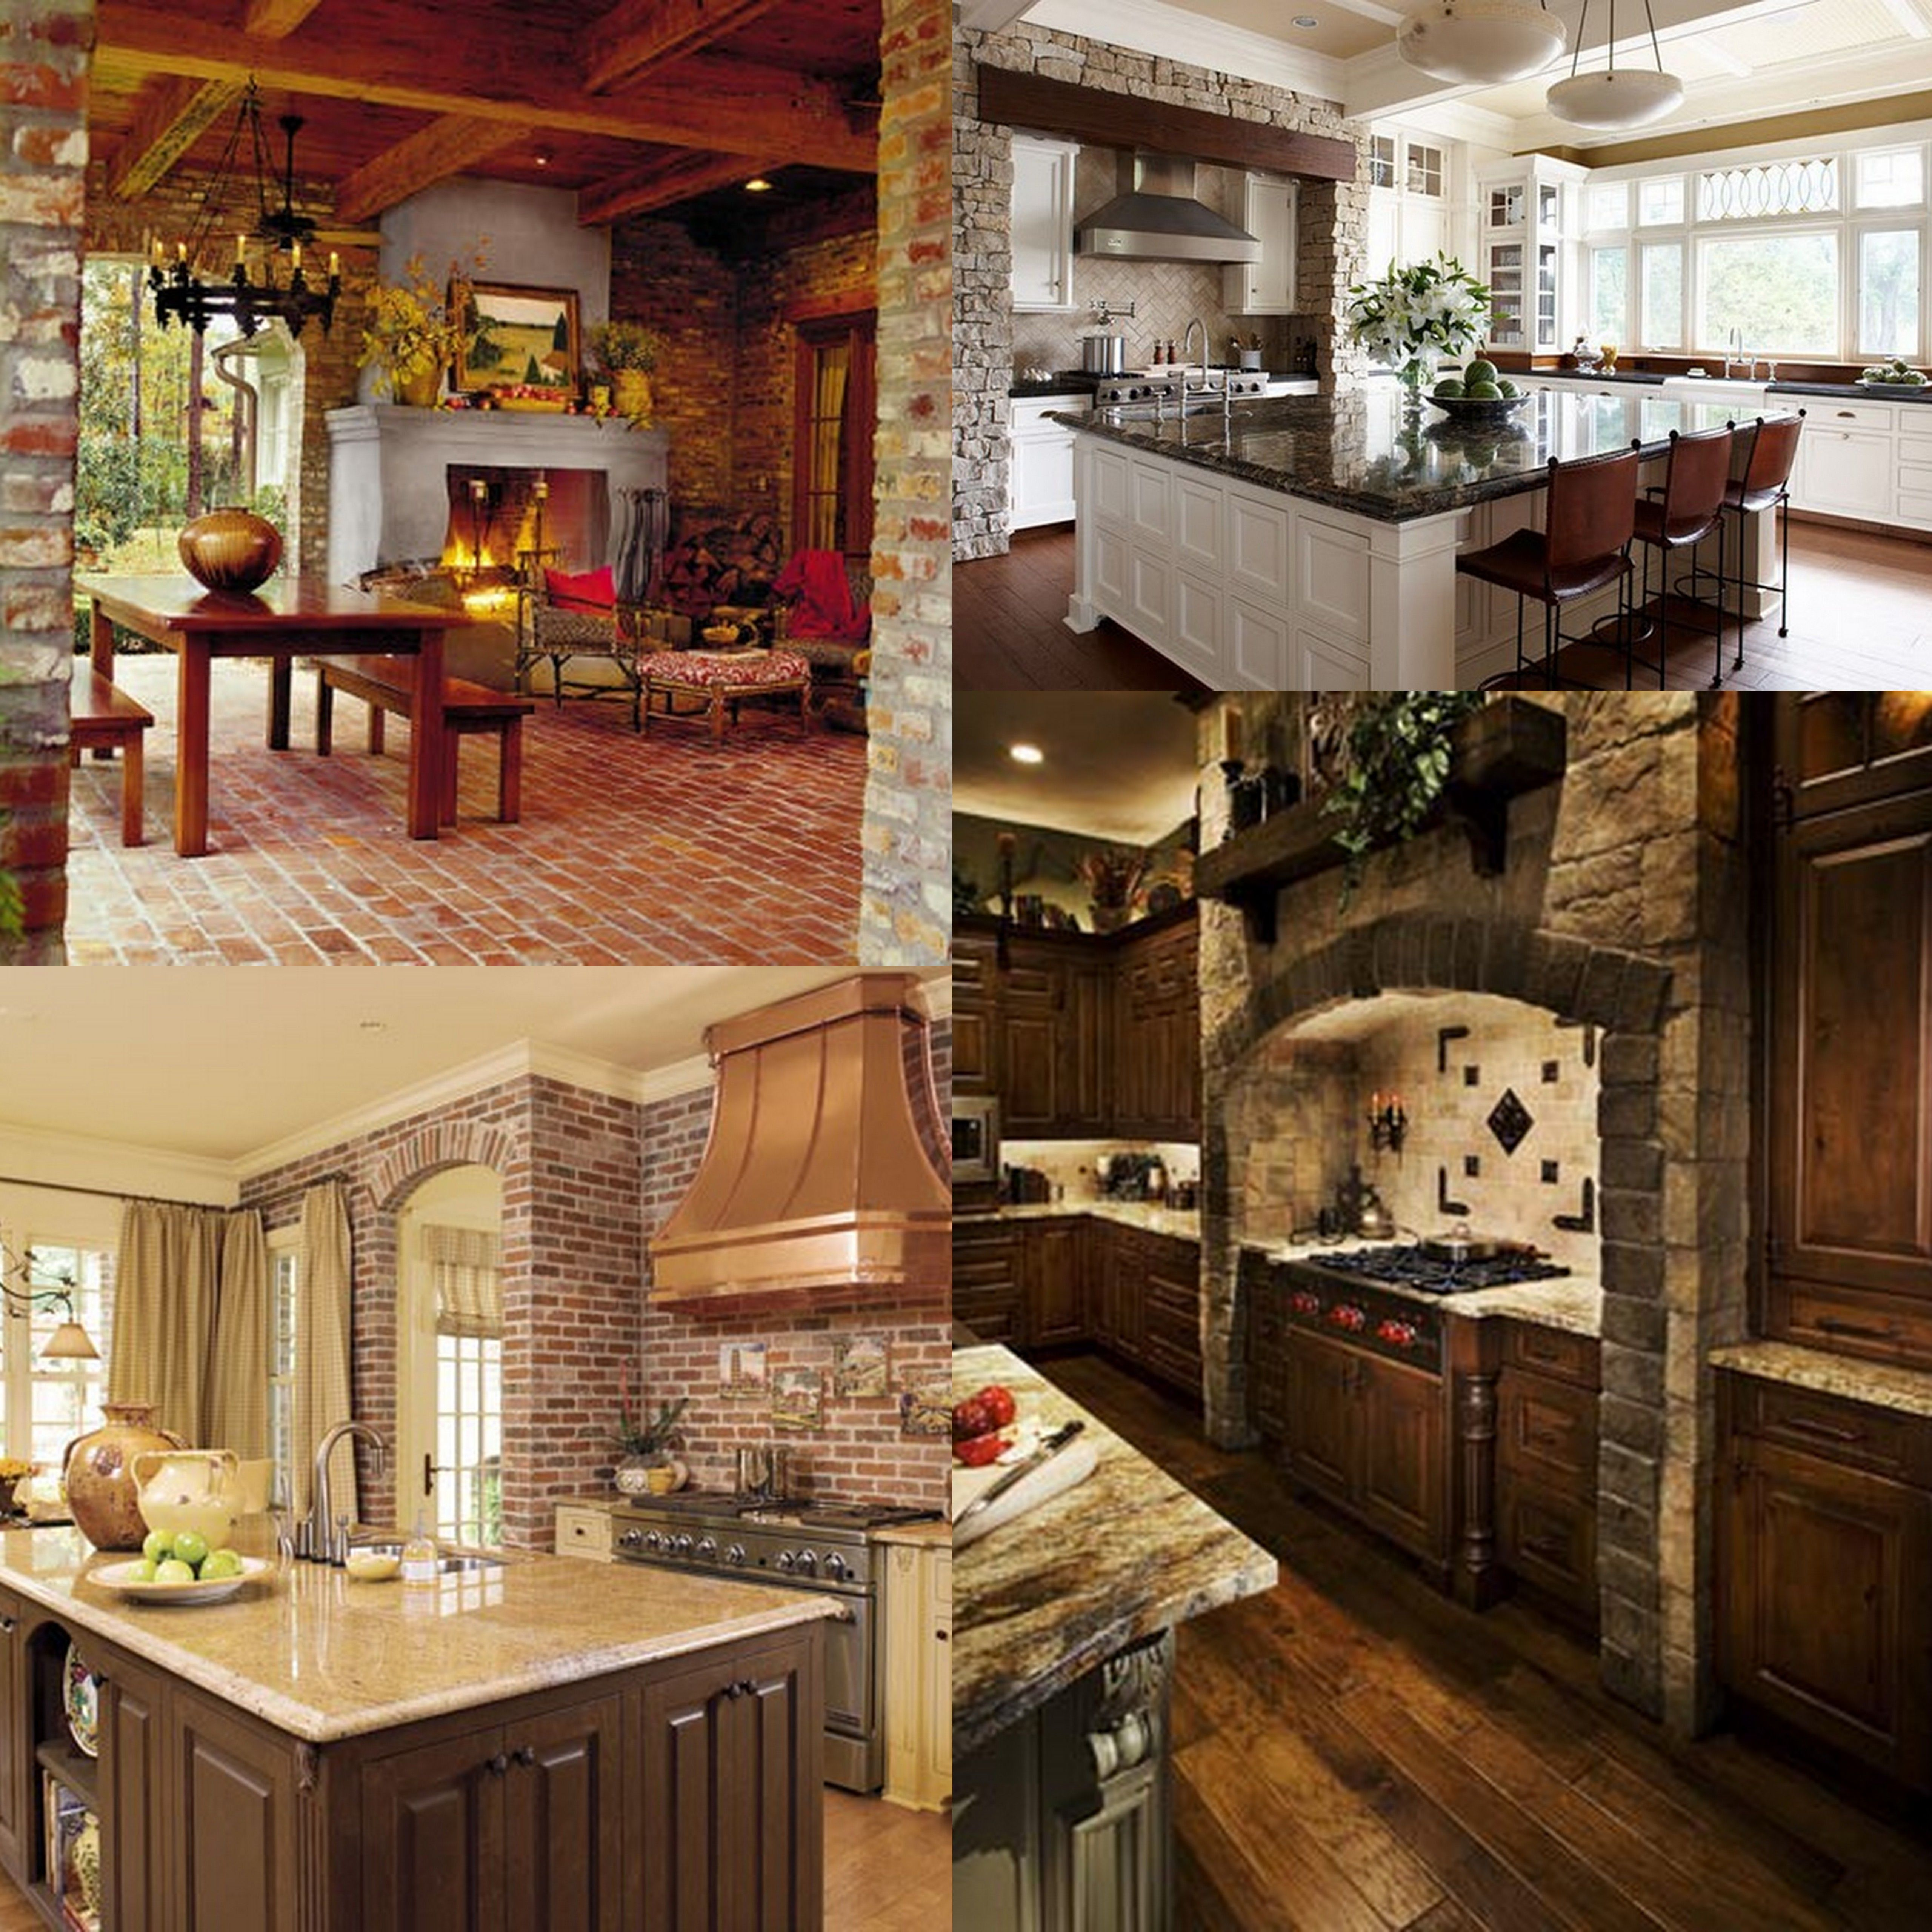 Seattle Kitchen And Mudroom Remodel: Home Decor, Home, Kitchen